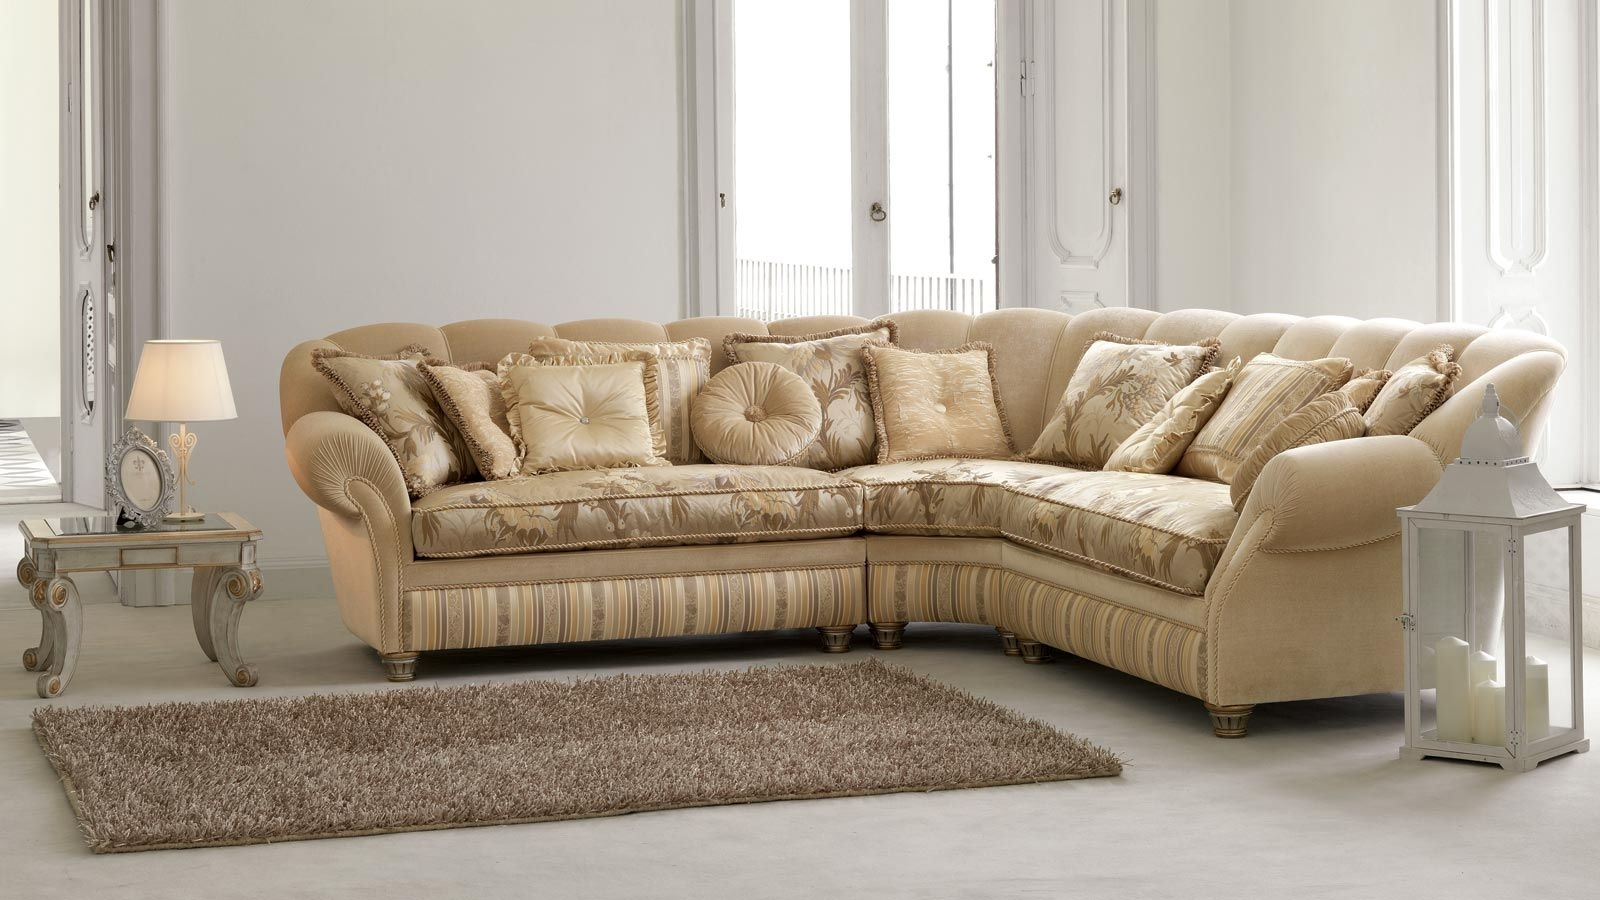 Most Recently Released Erie Pa Sectional Sofas Regarding Furniture : Sectional Sofa 80 X 80 Corner Sofa Extension Sectional (View 15 of 20)